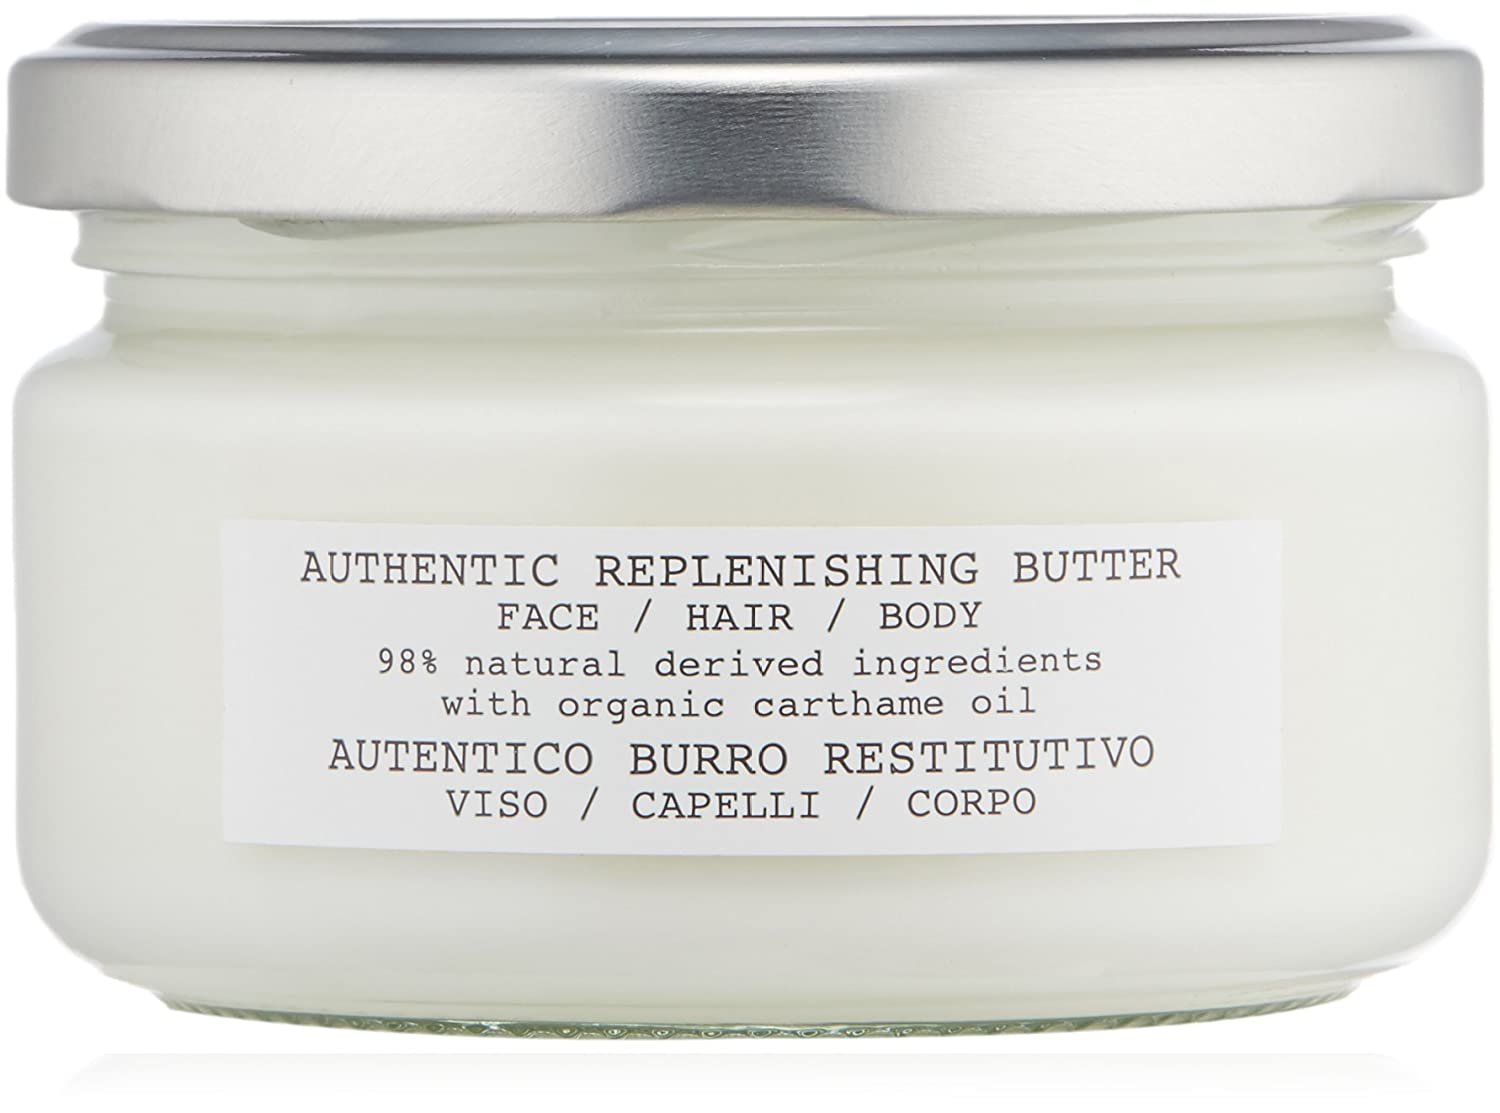 Davines Authentic Replenishing Butter Cream for face, hair, and body - 6.76 oz 8004608226727